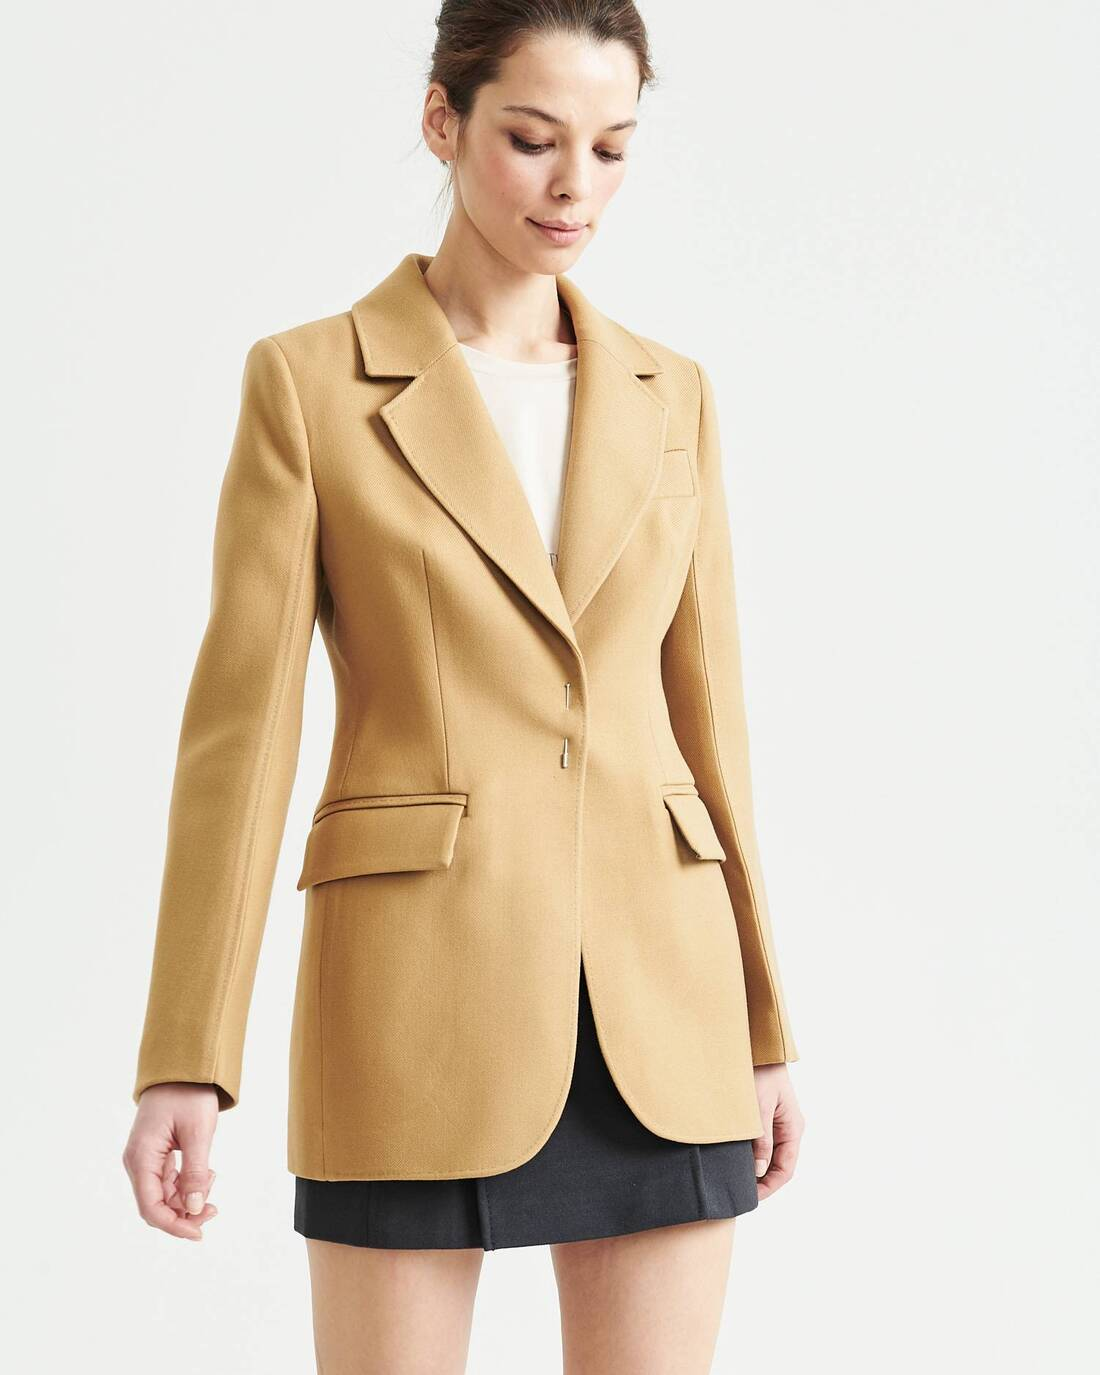 Fitted wool blazer with decorative stitching